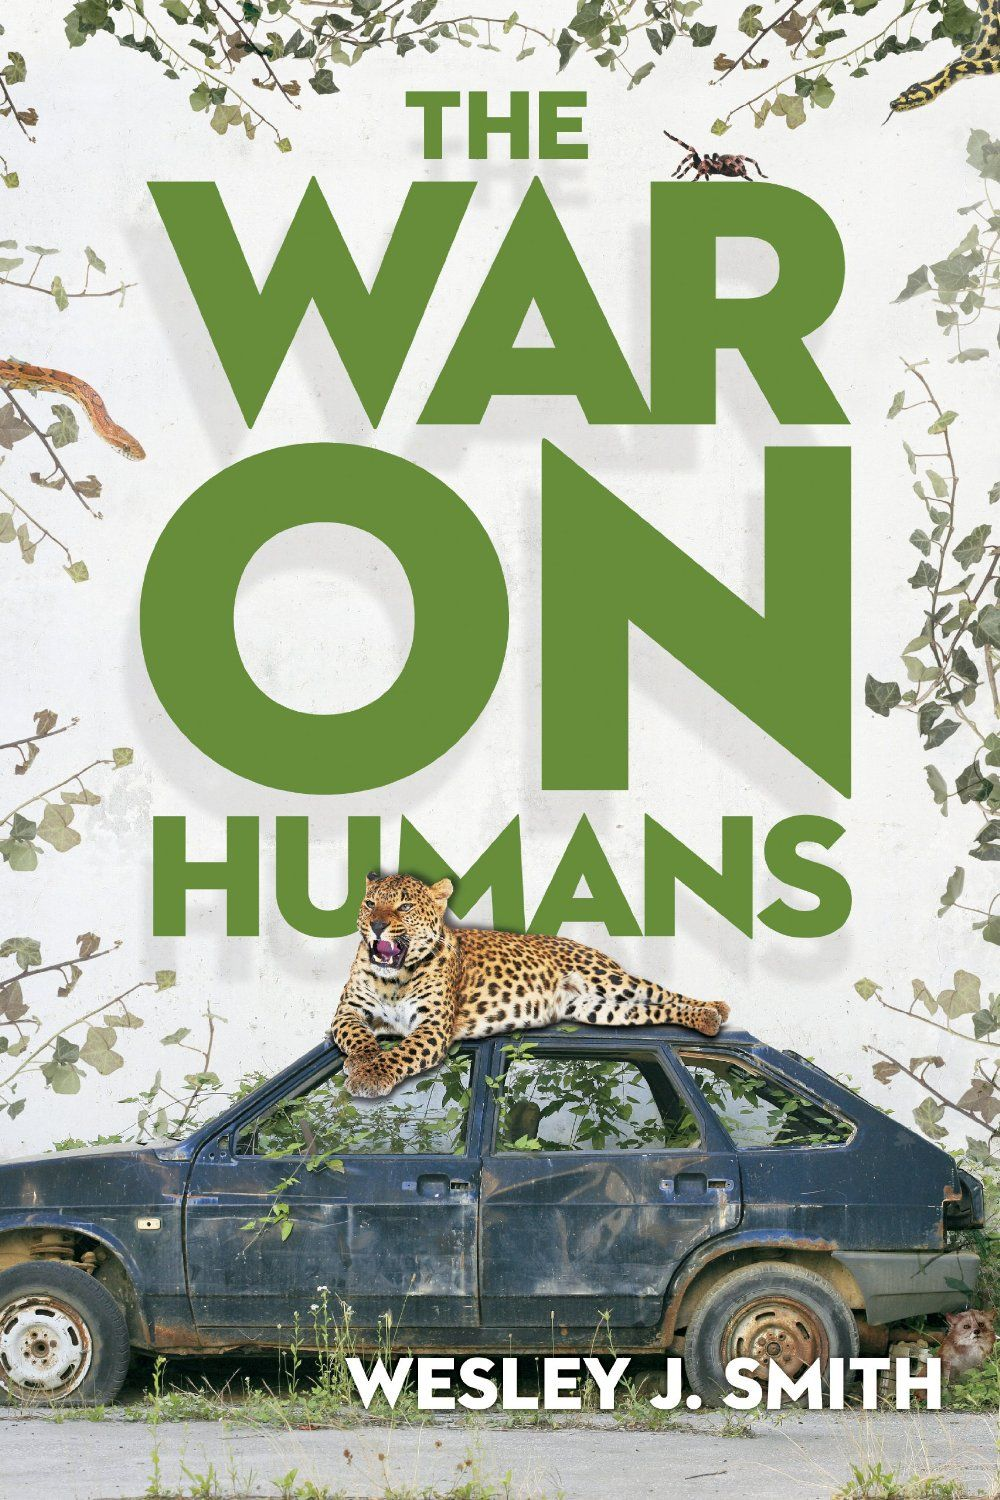 The War on Humans  ($2.41) http://www.amazon.com/exec/obidos/ASIN/B00I9PWR7C/hpb2-20/ASIN/B00I9PWR7C